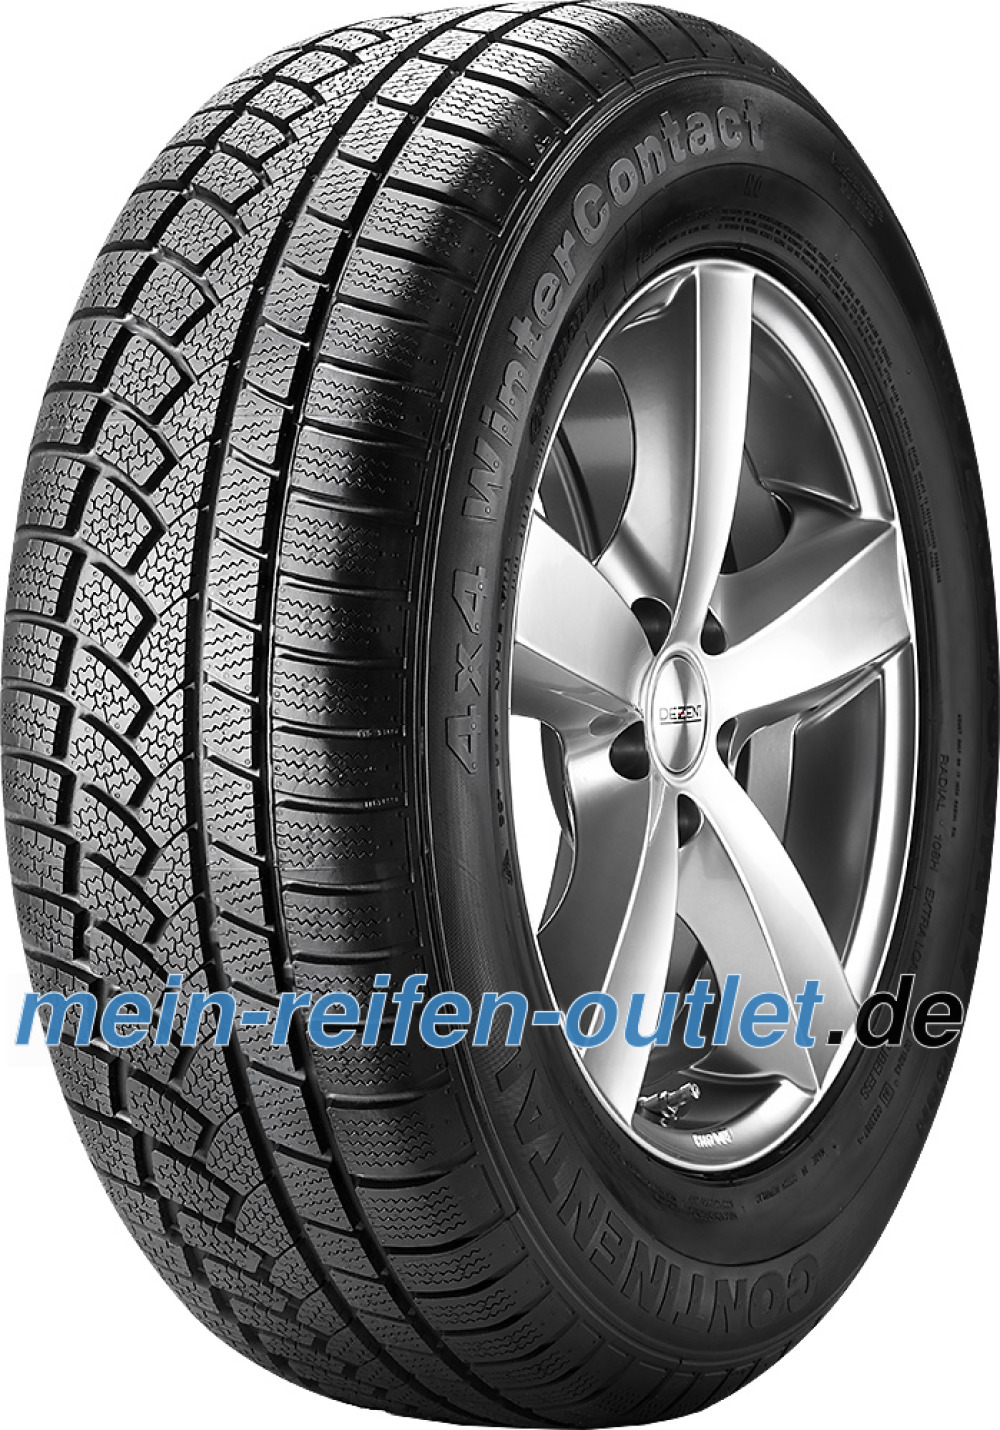 Continental 4X4 WinterContact ( 255/55 R18 105H mit Leiste, mit Felgenrippe, MO )